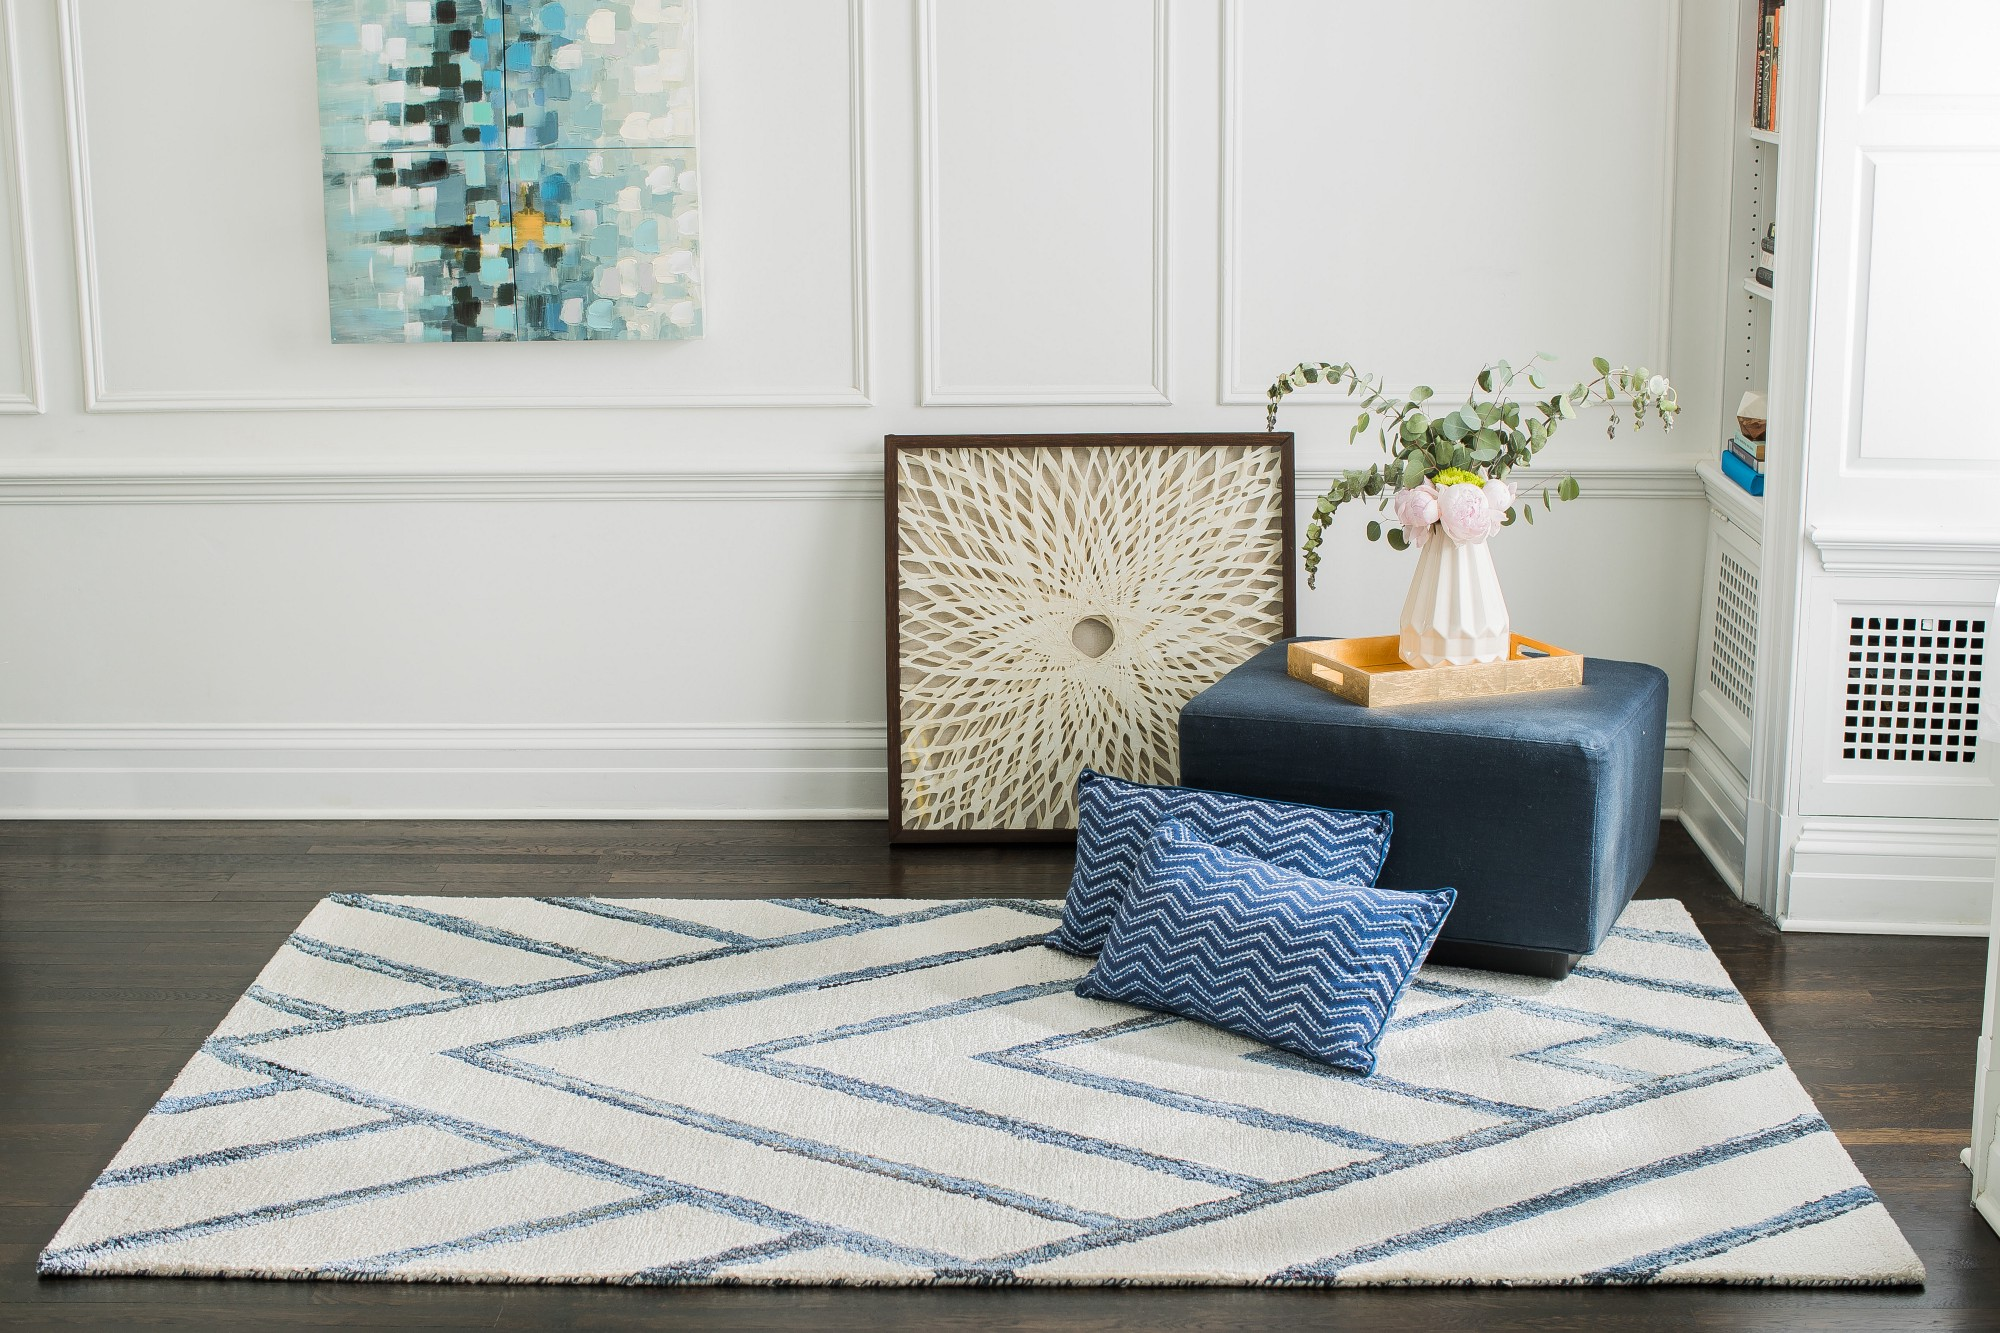 Unique and Creative Custom Area Rugs Collection with High-quality Materials